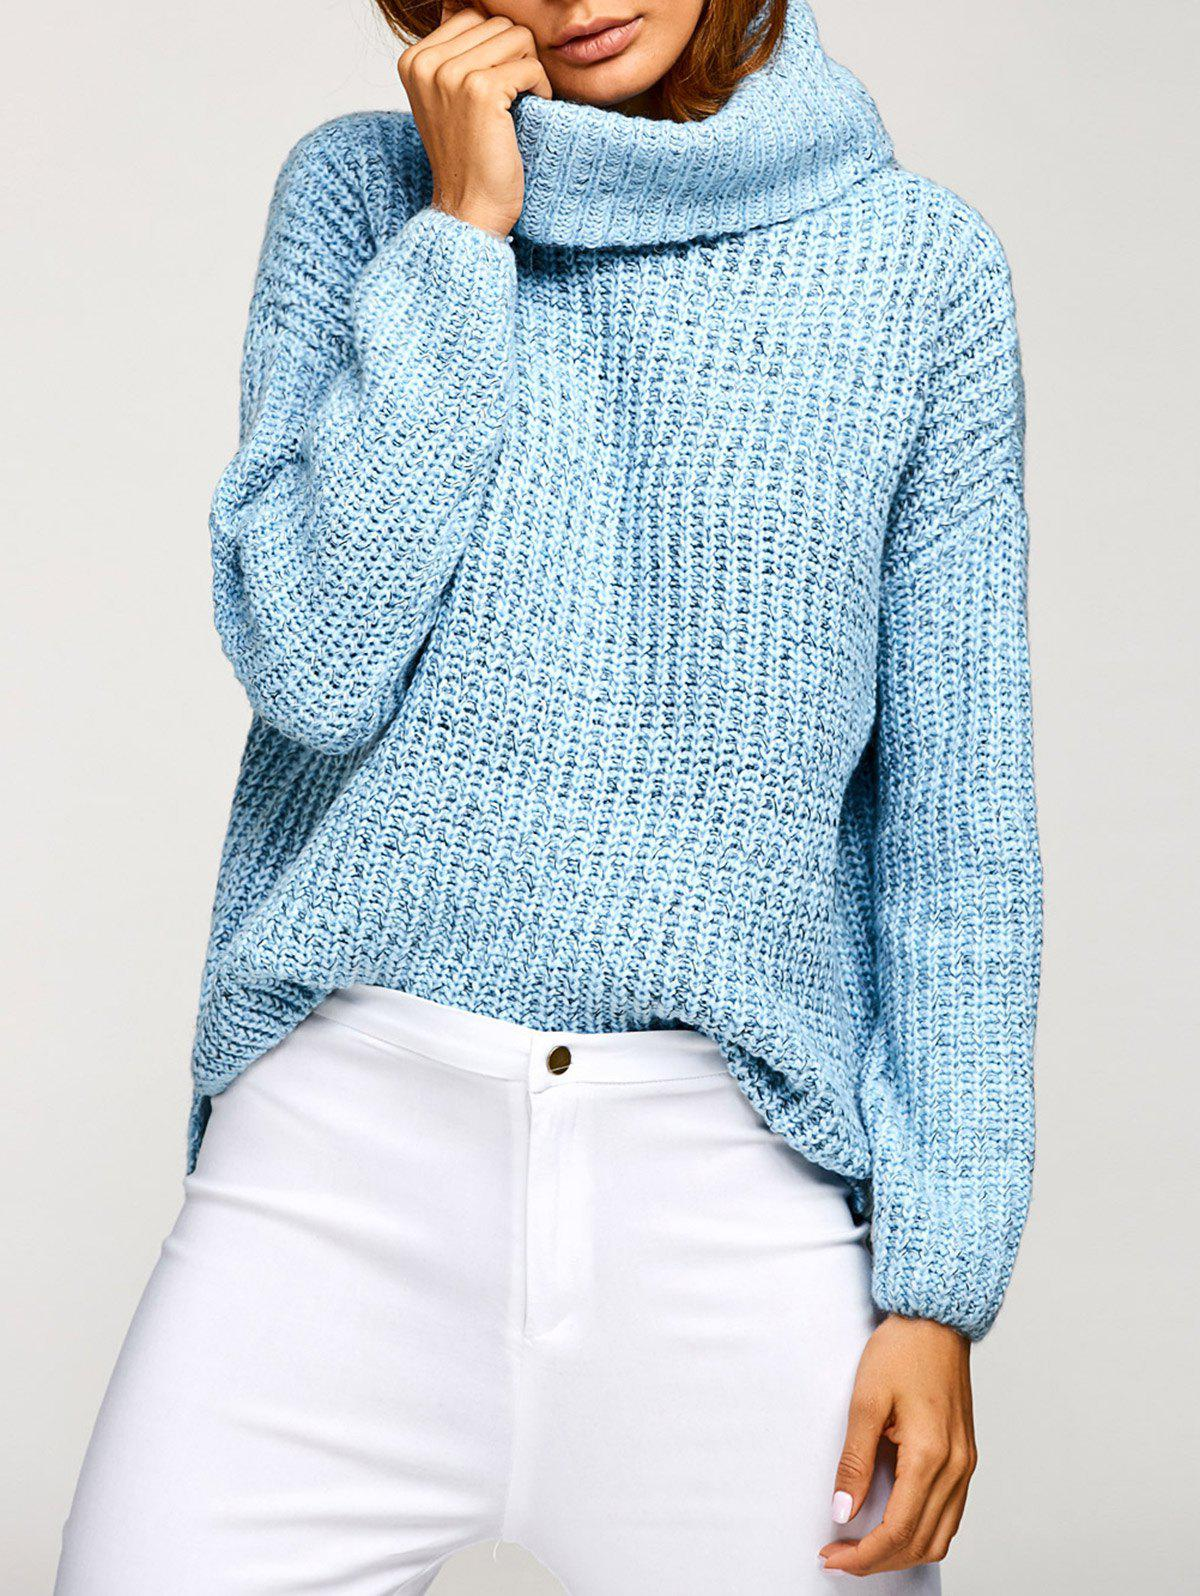 Cowl Neck Oversized Pullover SweaterWOMEN<br><br>Size: ONE SIZE; Color: BLUE; Type: Pullovers; Material: Acrylic; Sleeve Length: Full; Collar: Cowl Neck; Style: Fashion; Pattern Type: Solid; Season: Fall,Spring; Weight: 0.470kg; Package Contents: 1 x Sweater;